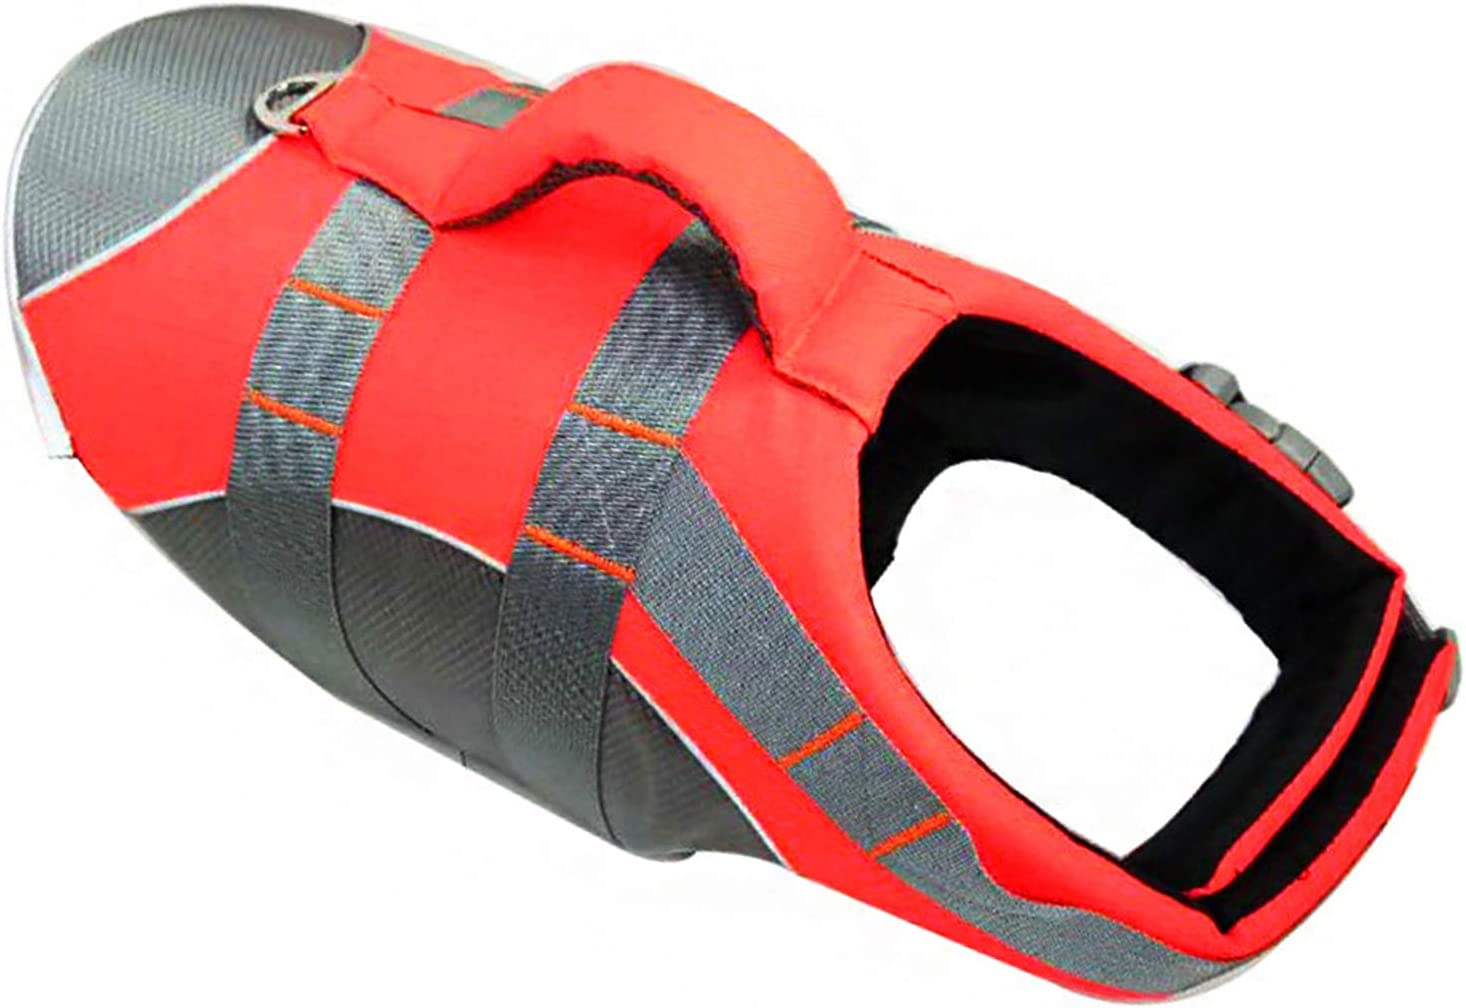 BIZAR Dog Life Jacket with Low price Rescue Handle cheap Adjustable Ripstop